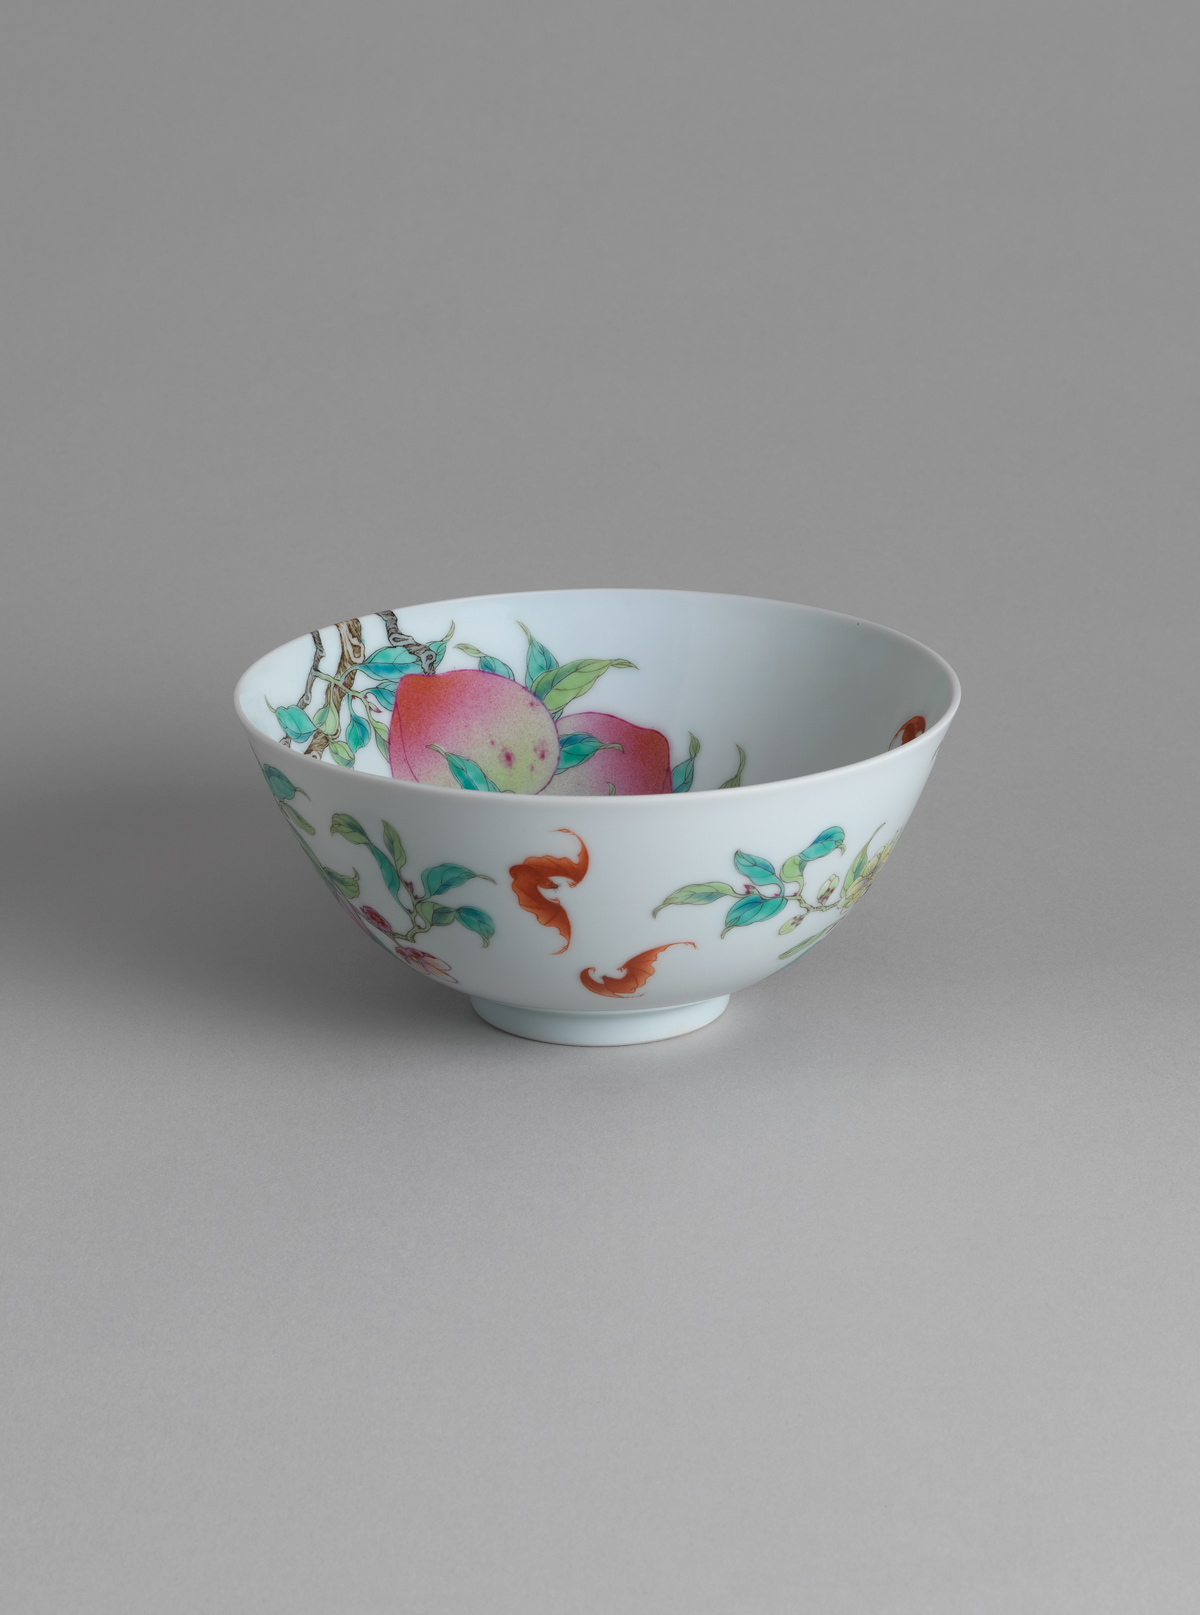 Famille rose porcelain 'peach' bowl